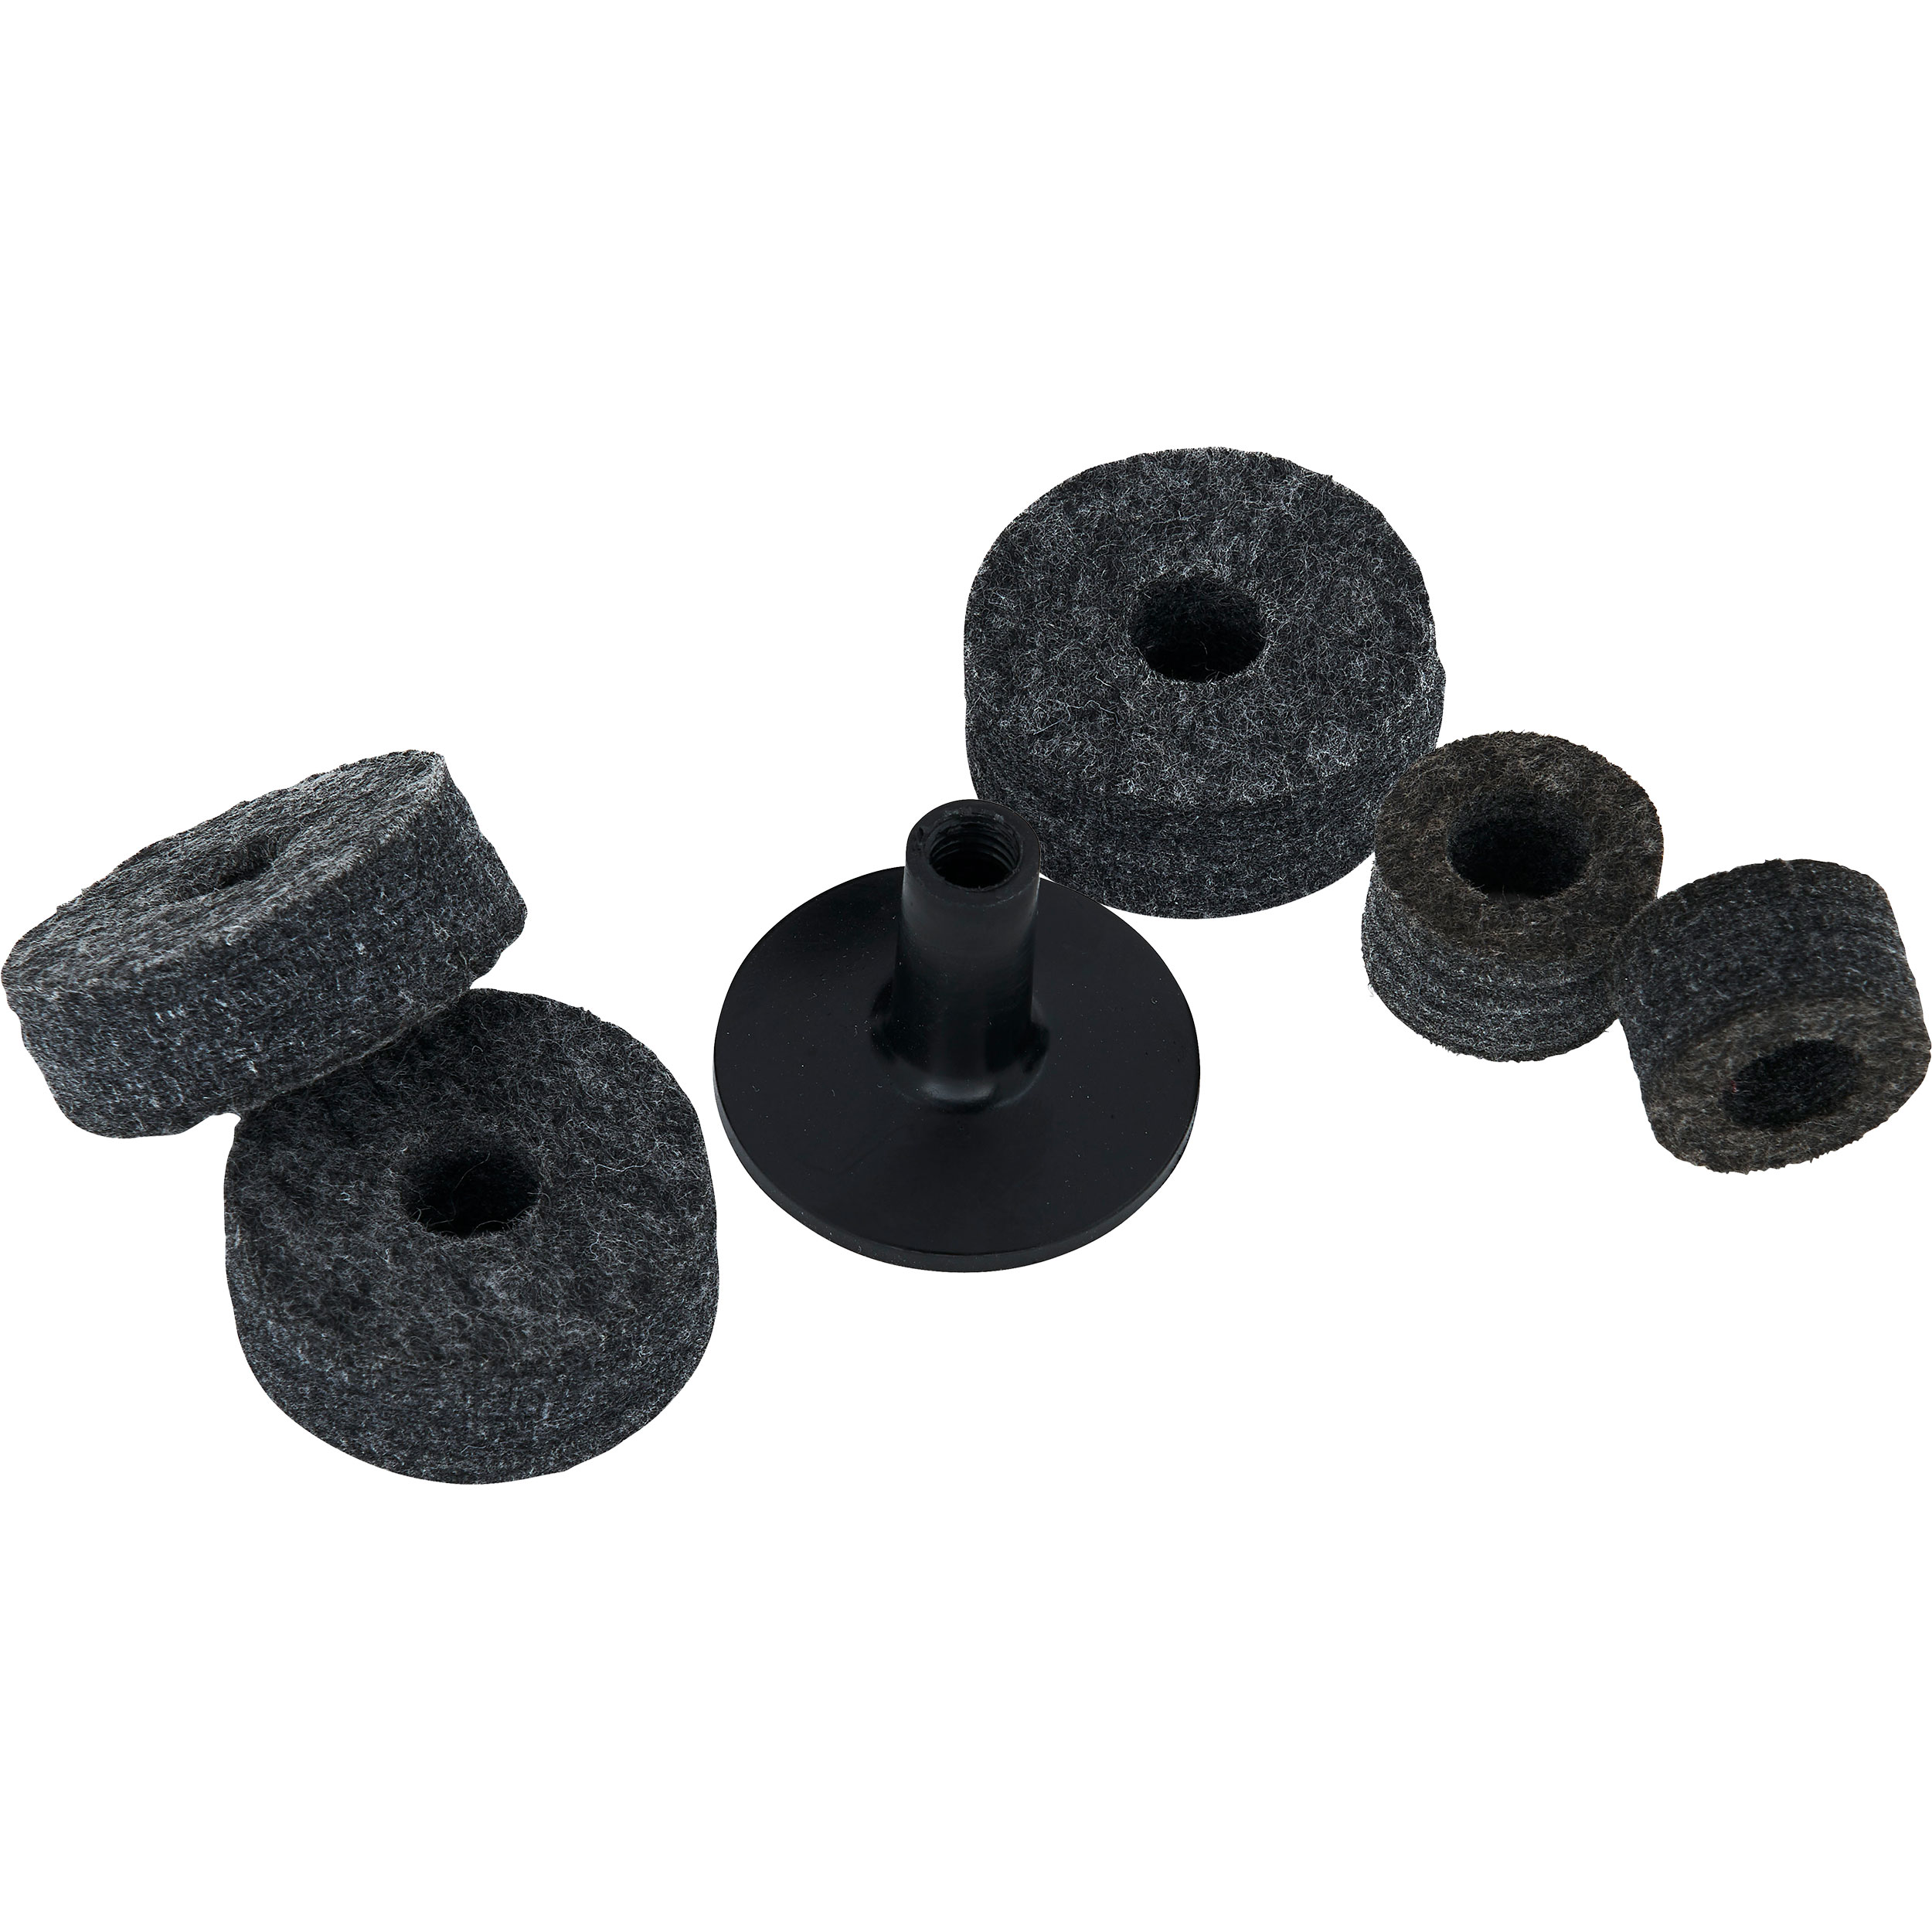 PDP Cymbal Felts and Cymbal Seat Kit (6-Piece)